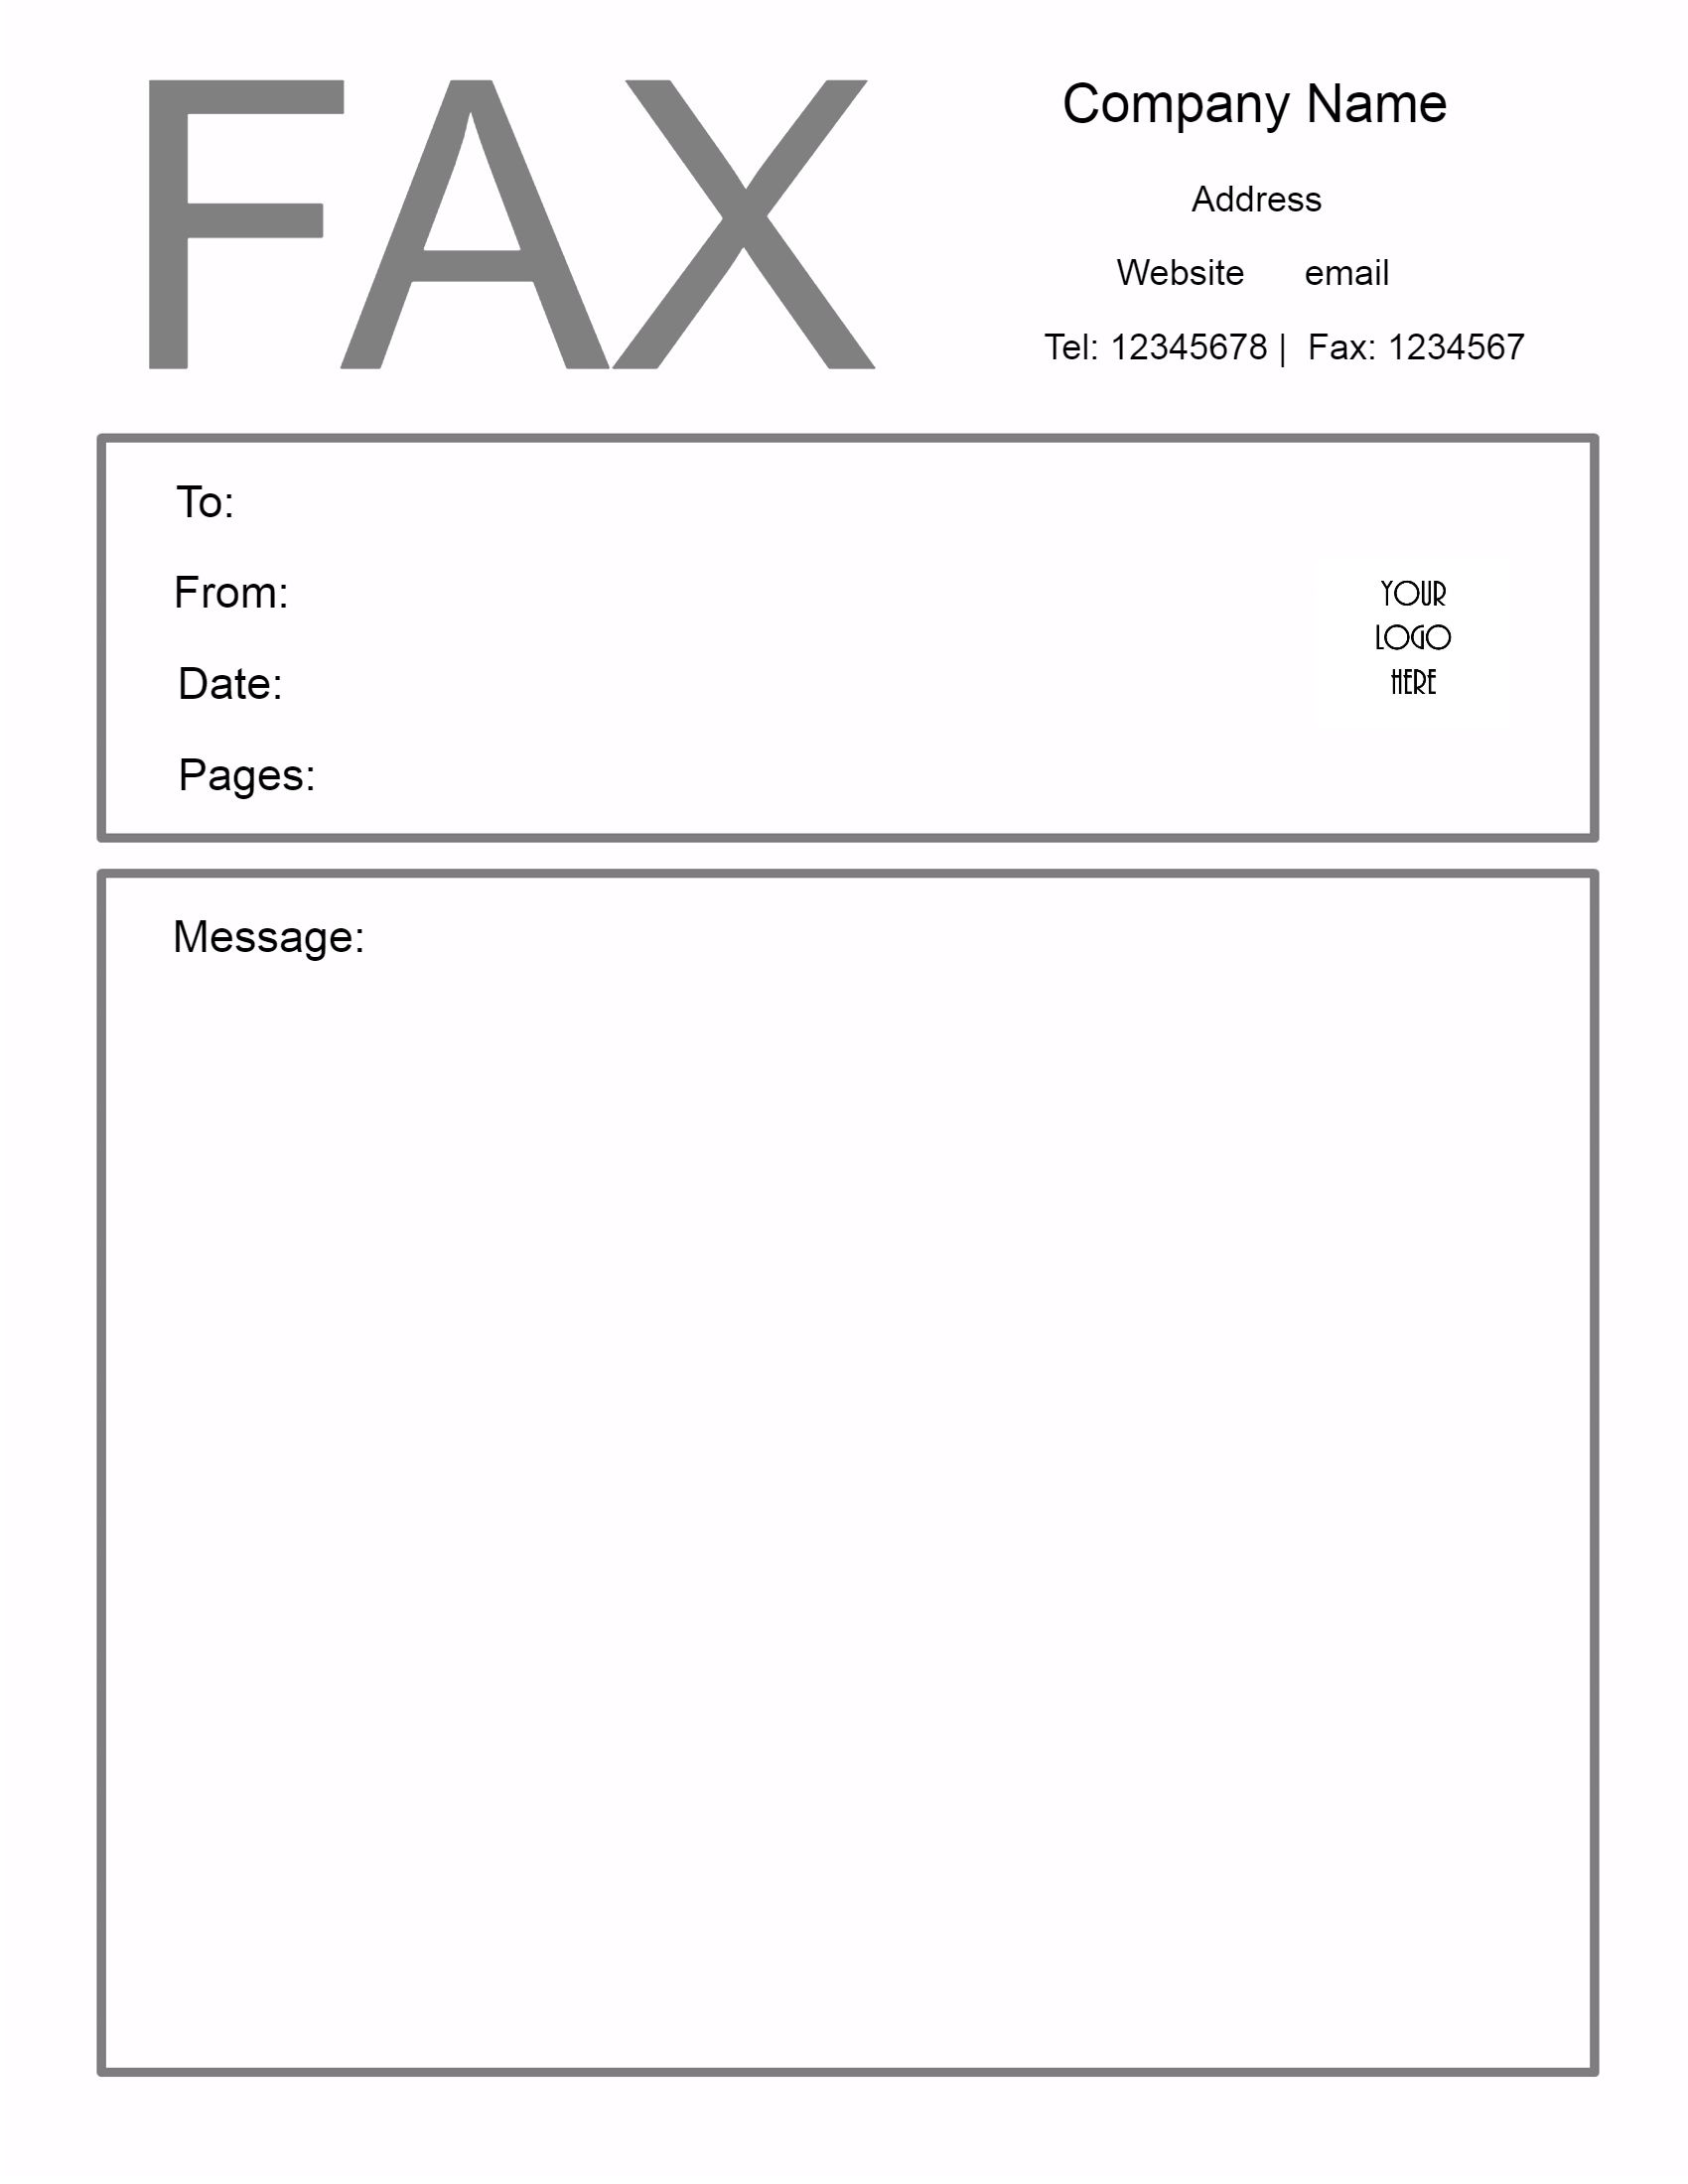 fax cover sheet template. Resume Example. Resume CV Cover Letter